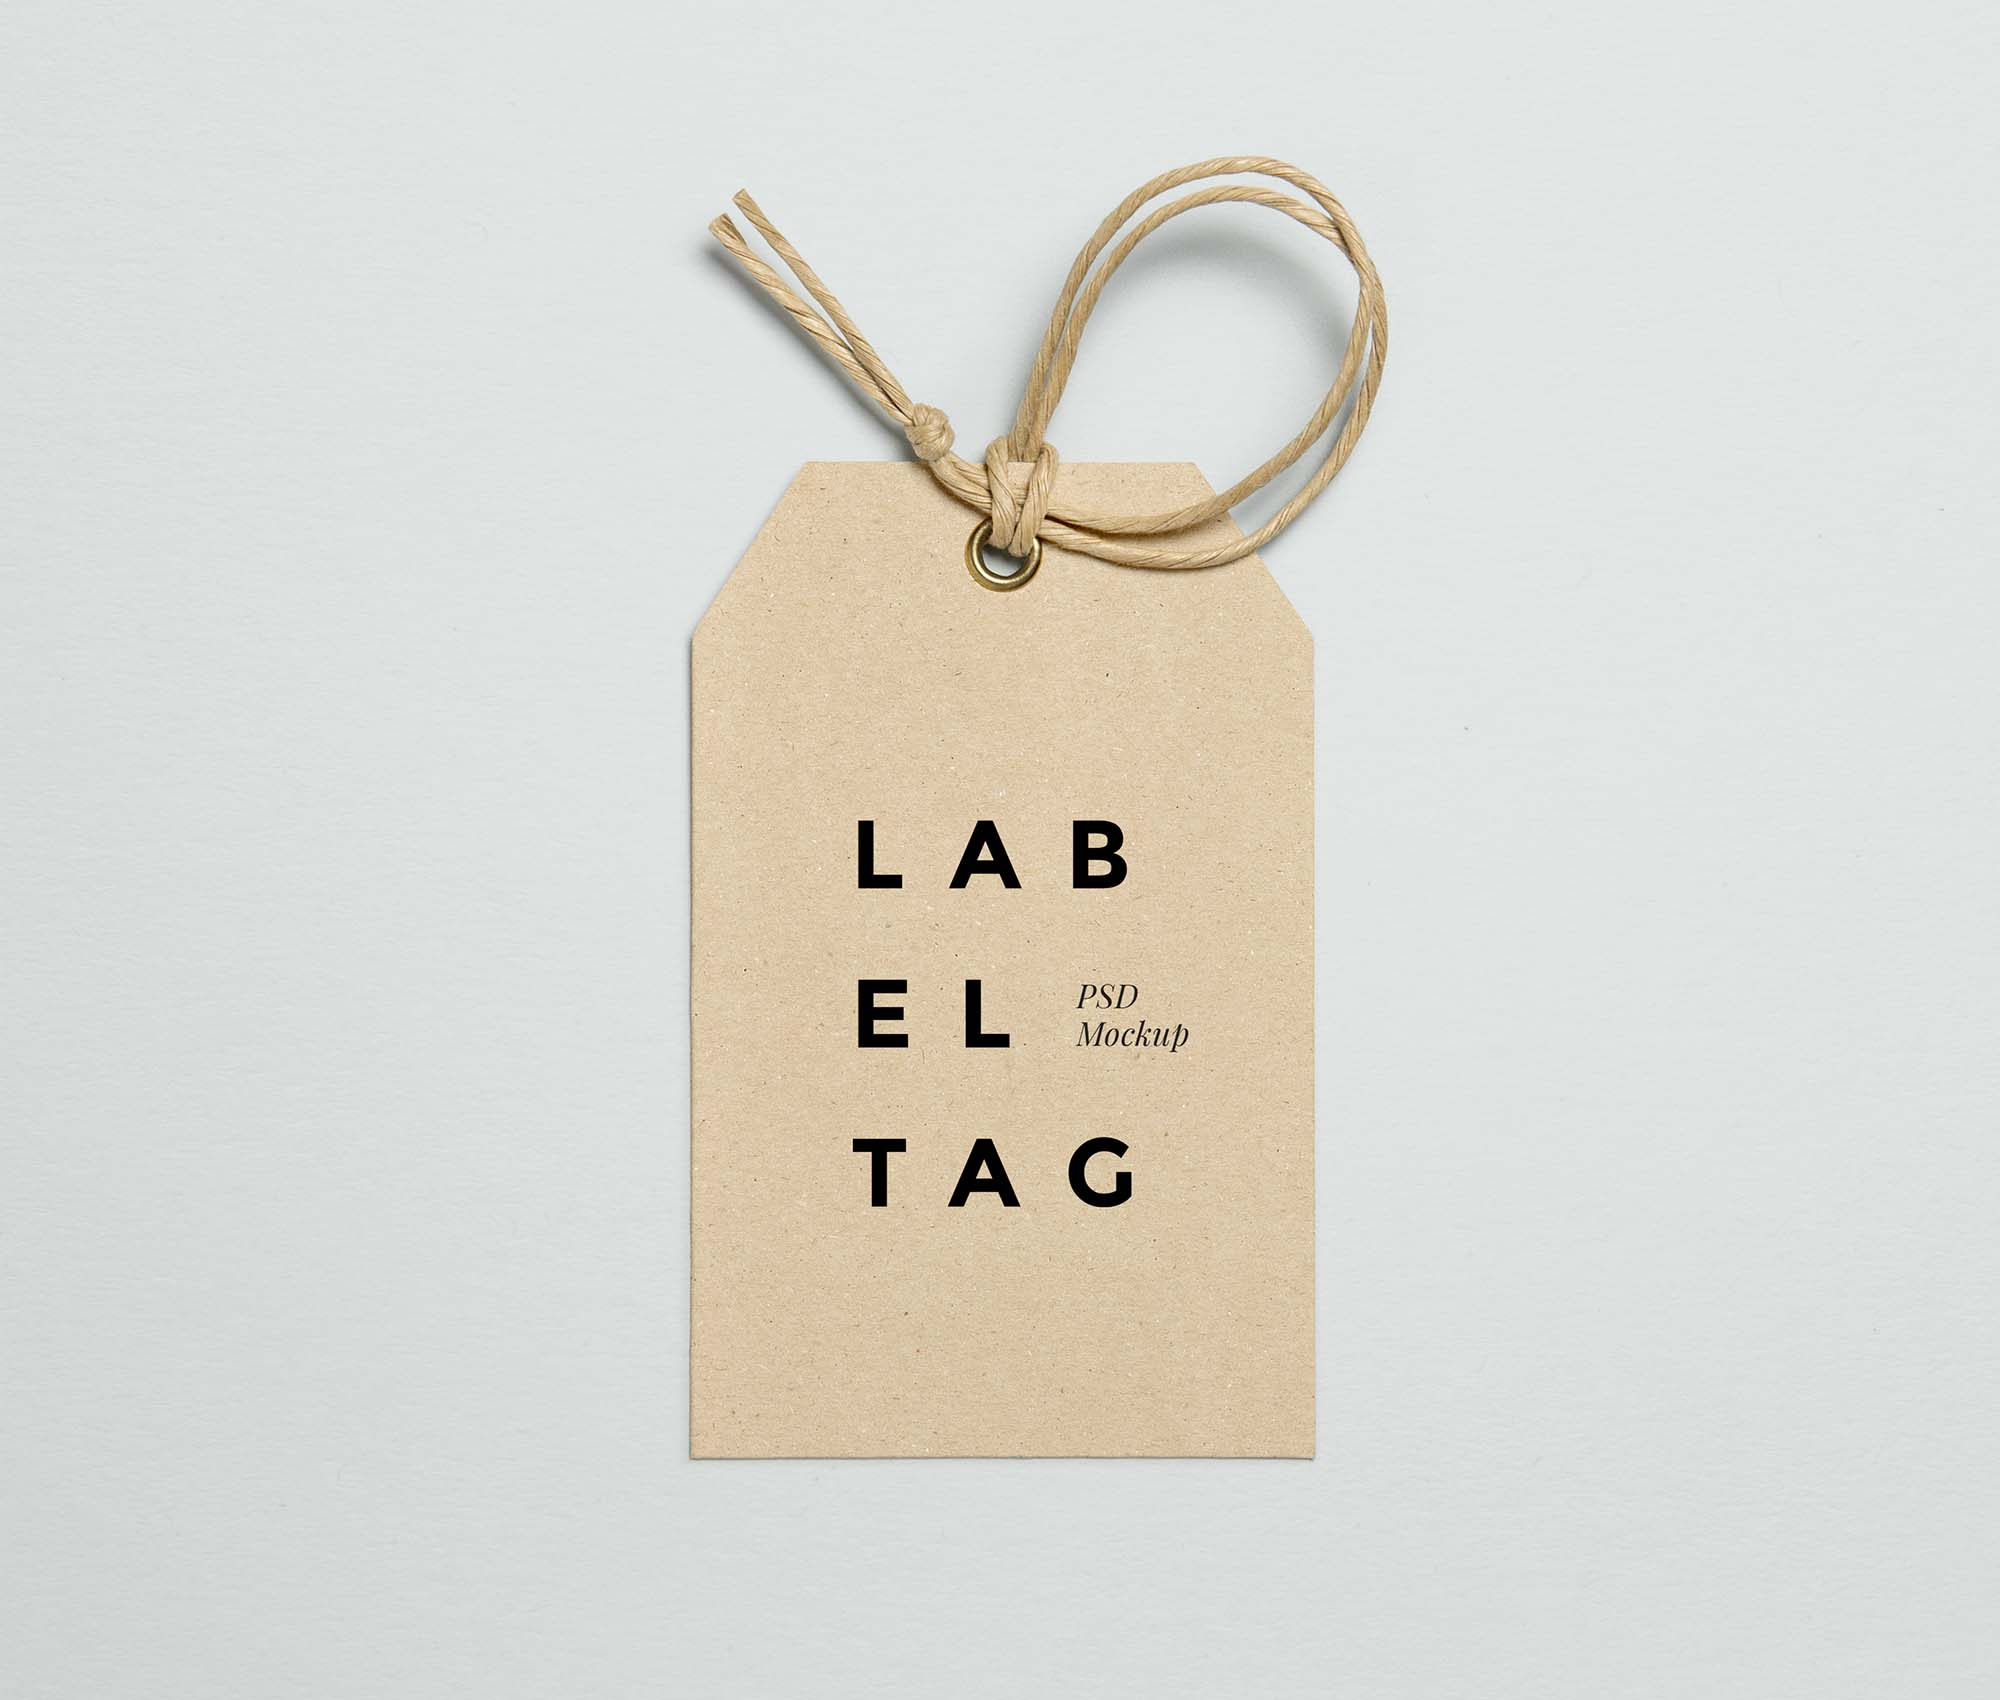 Label Tag Mockup 2